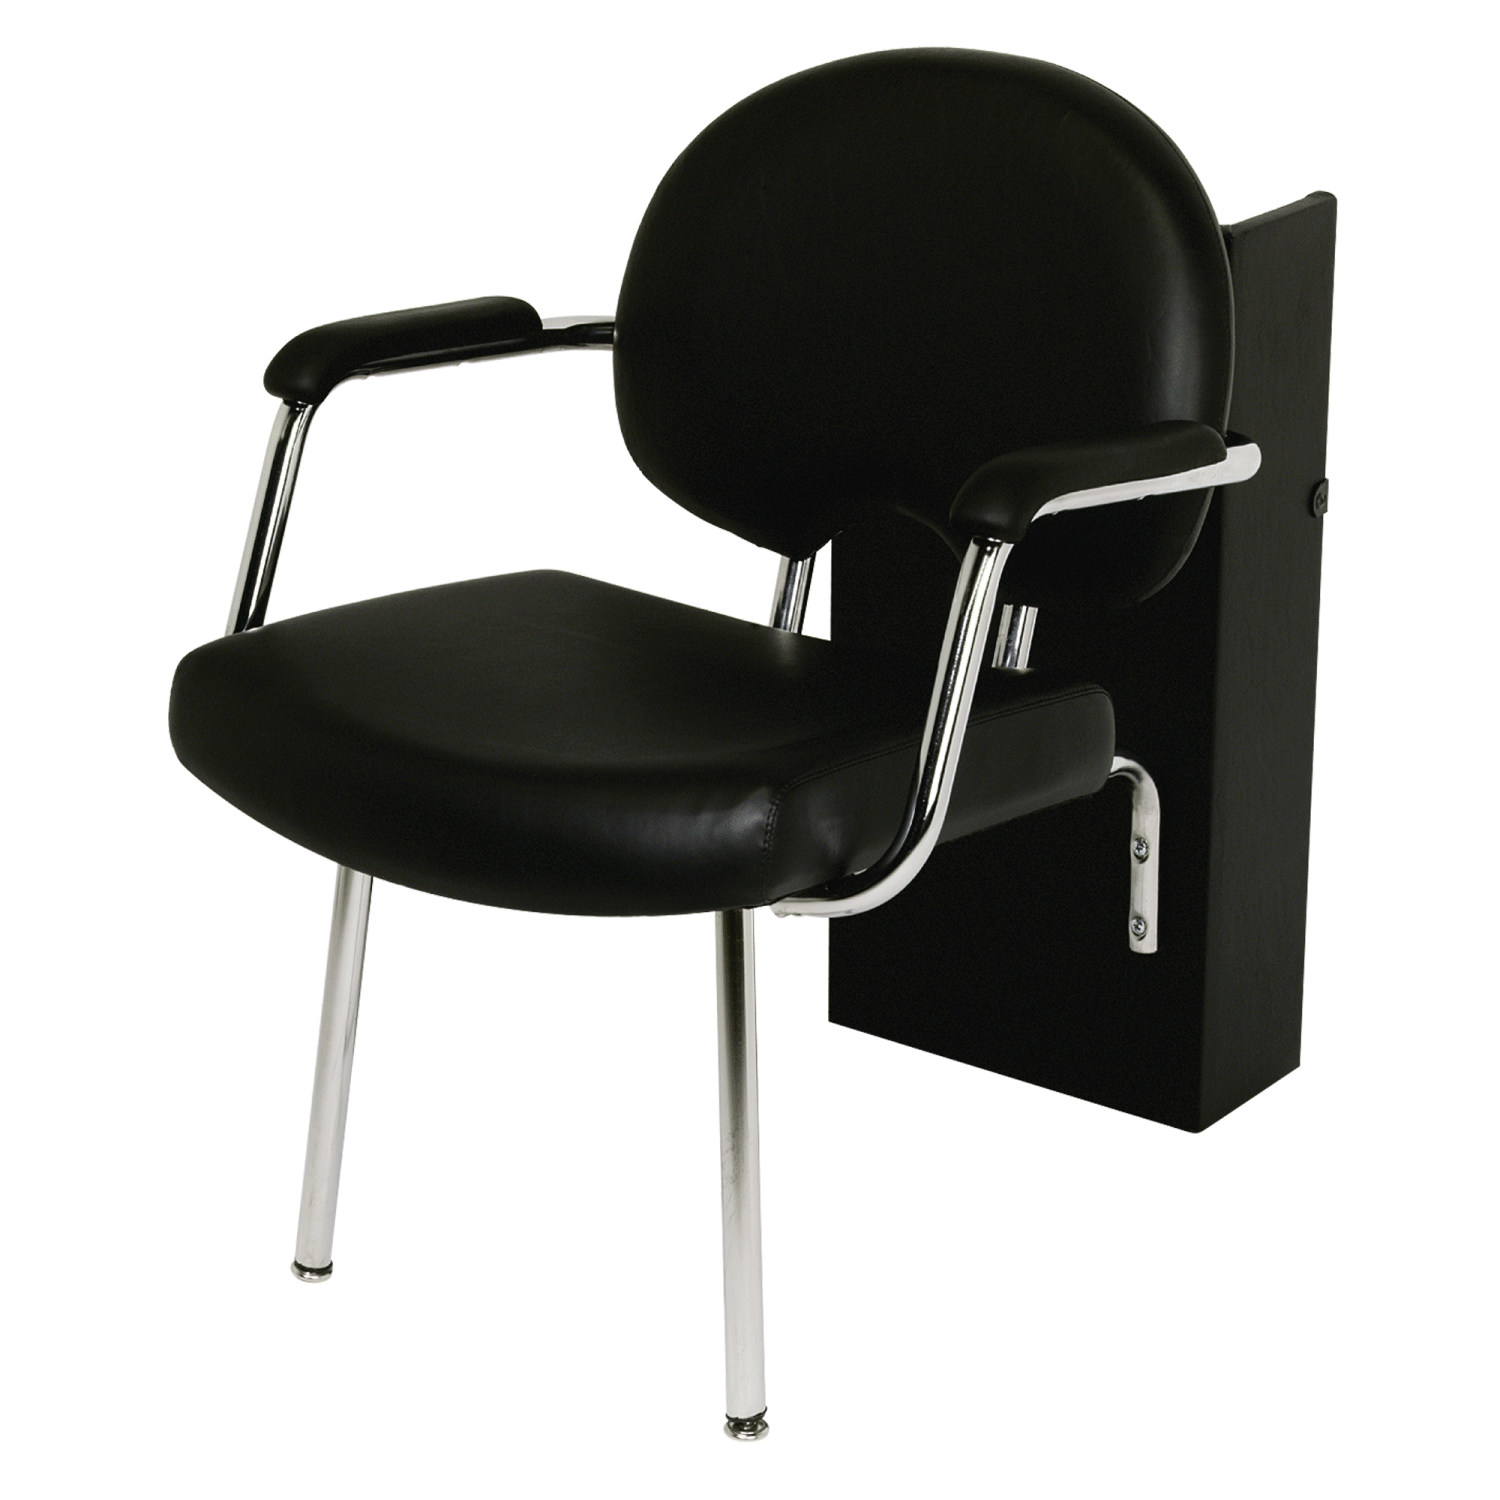 Remarkable Arch Plus Dryer Chair At Cosmoprof Equipment Caraccident5 Cool Chair Designs And Ideas Caraccident5Info